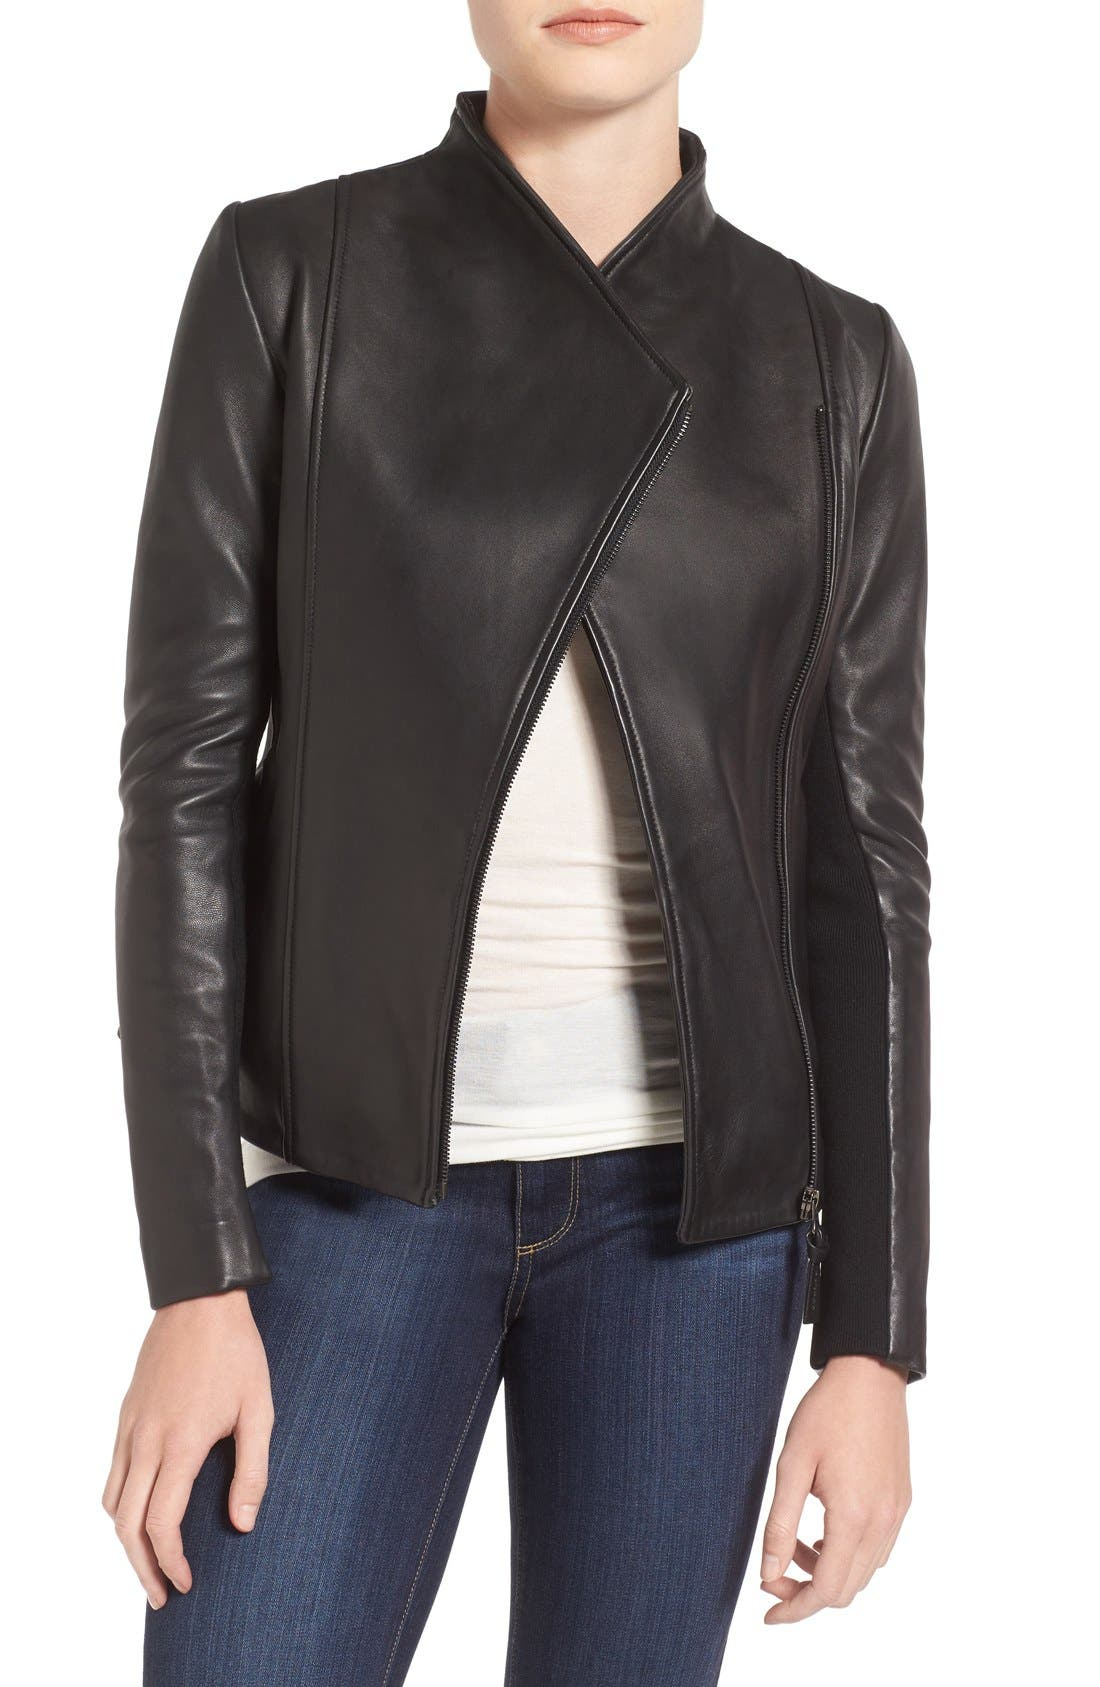 MACKAGE Leather Jacket, Main, color, 001